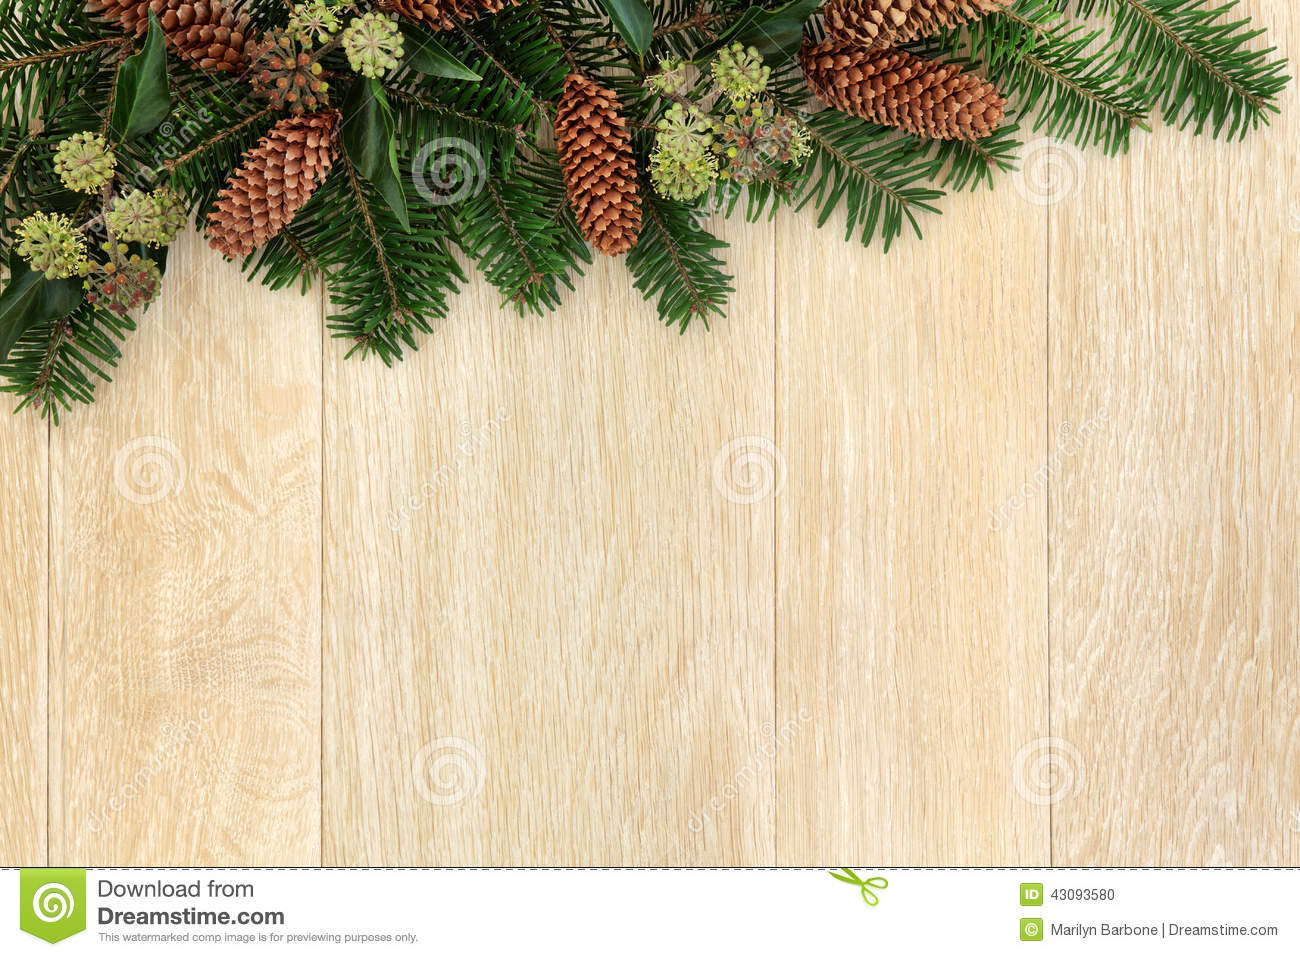 Winter Greenery Border Stock Photo - Image: 43093580